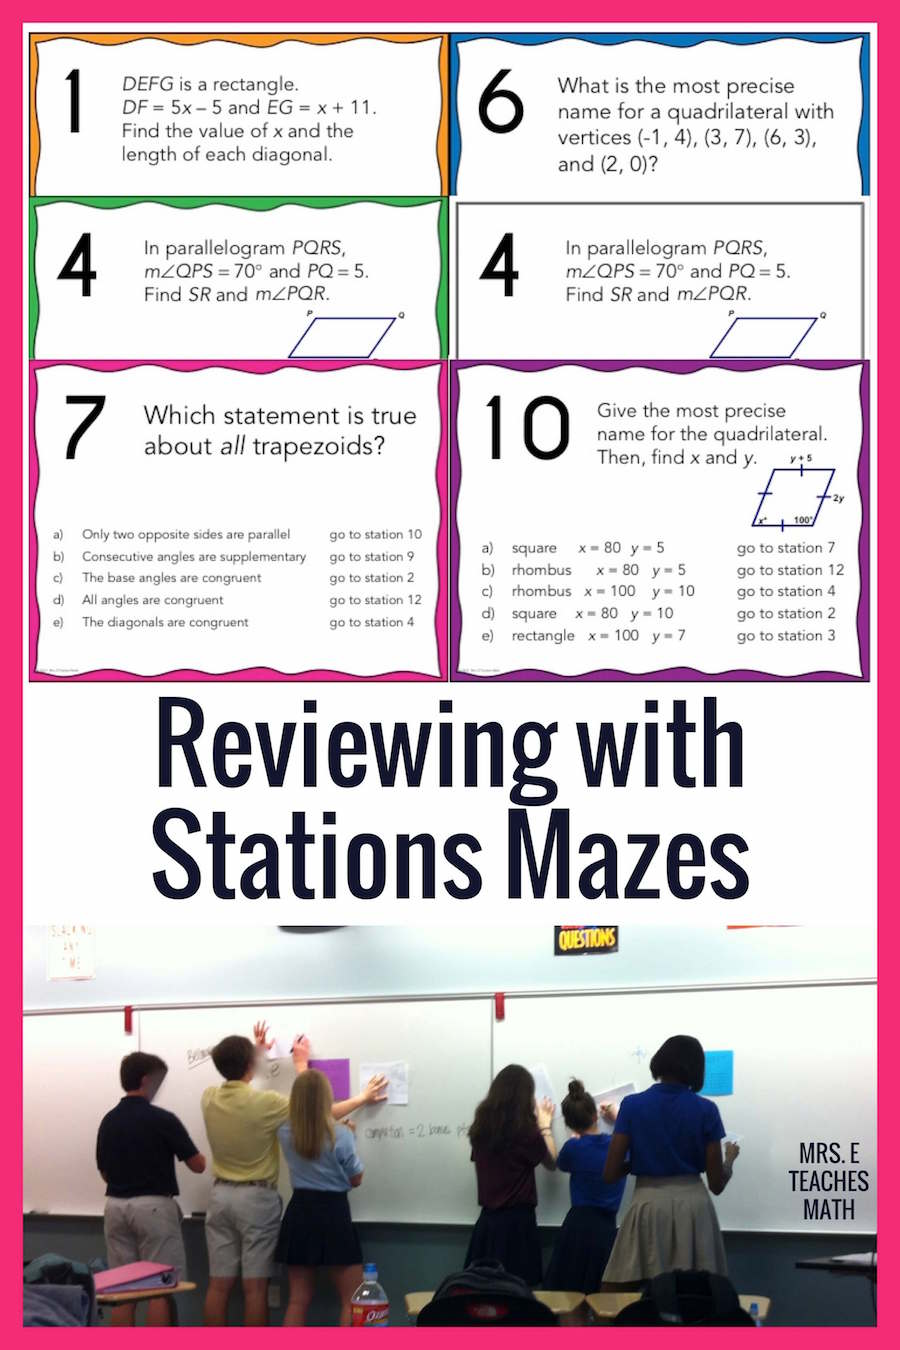 reviewing with stations mazes mrs e teaches math